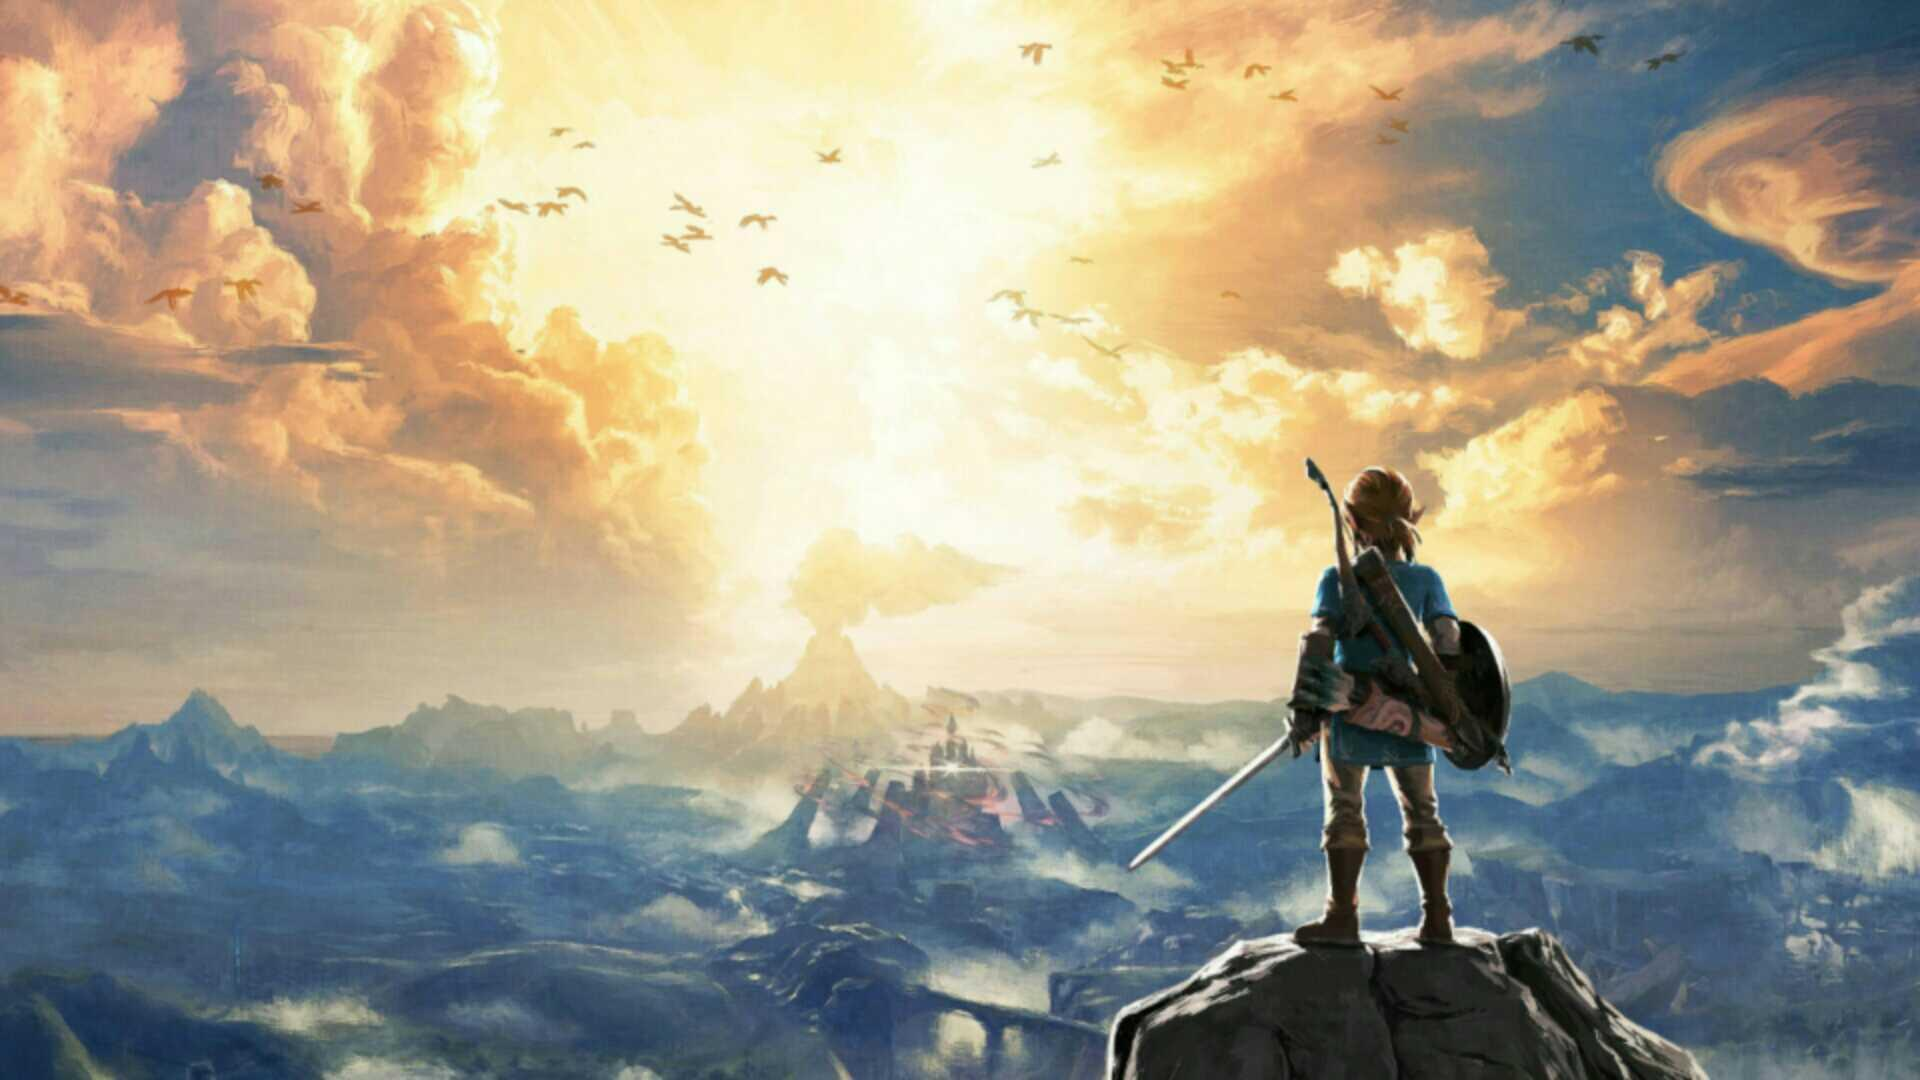 Zelda Hd Wallpaper Legend For Android Apk Download